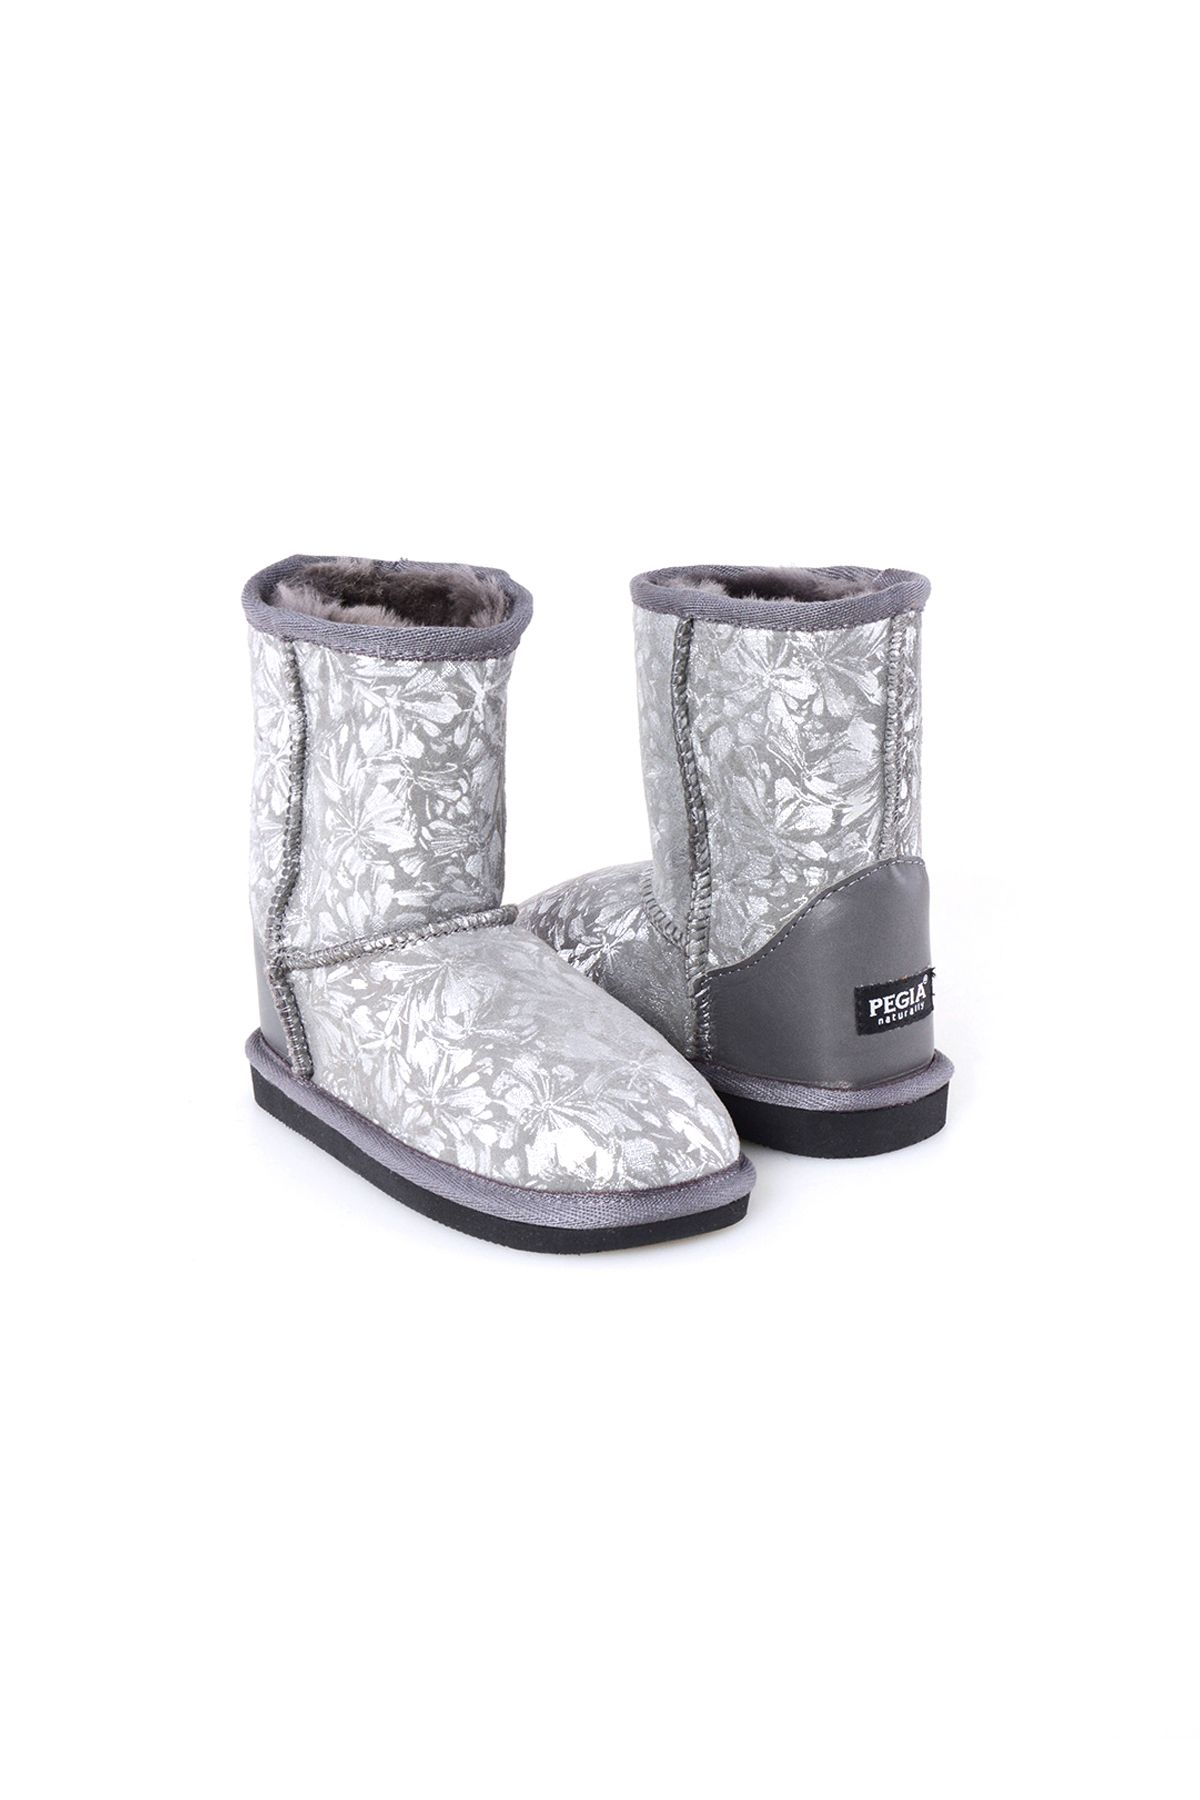 Pegia Classic Kids Boots From Sheepskin Fur With Flower Pattern Gray